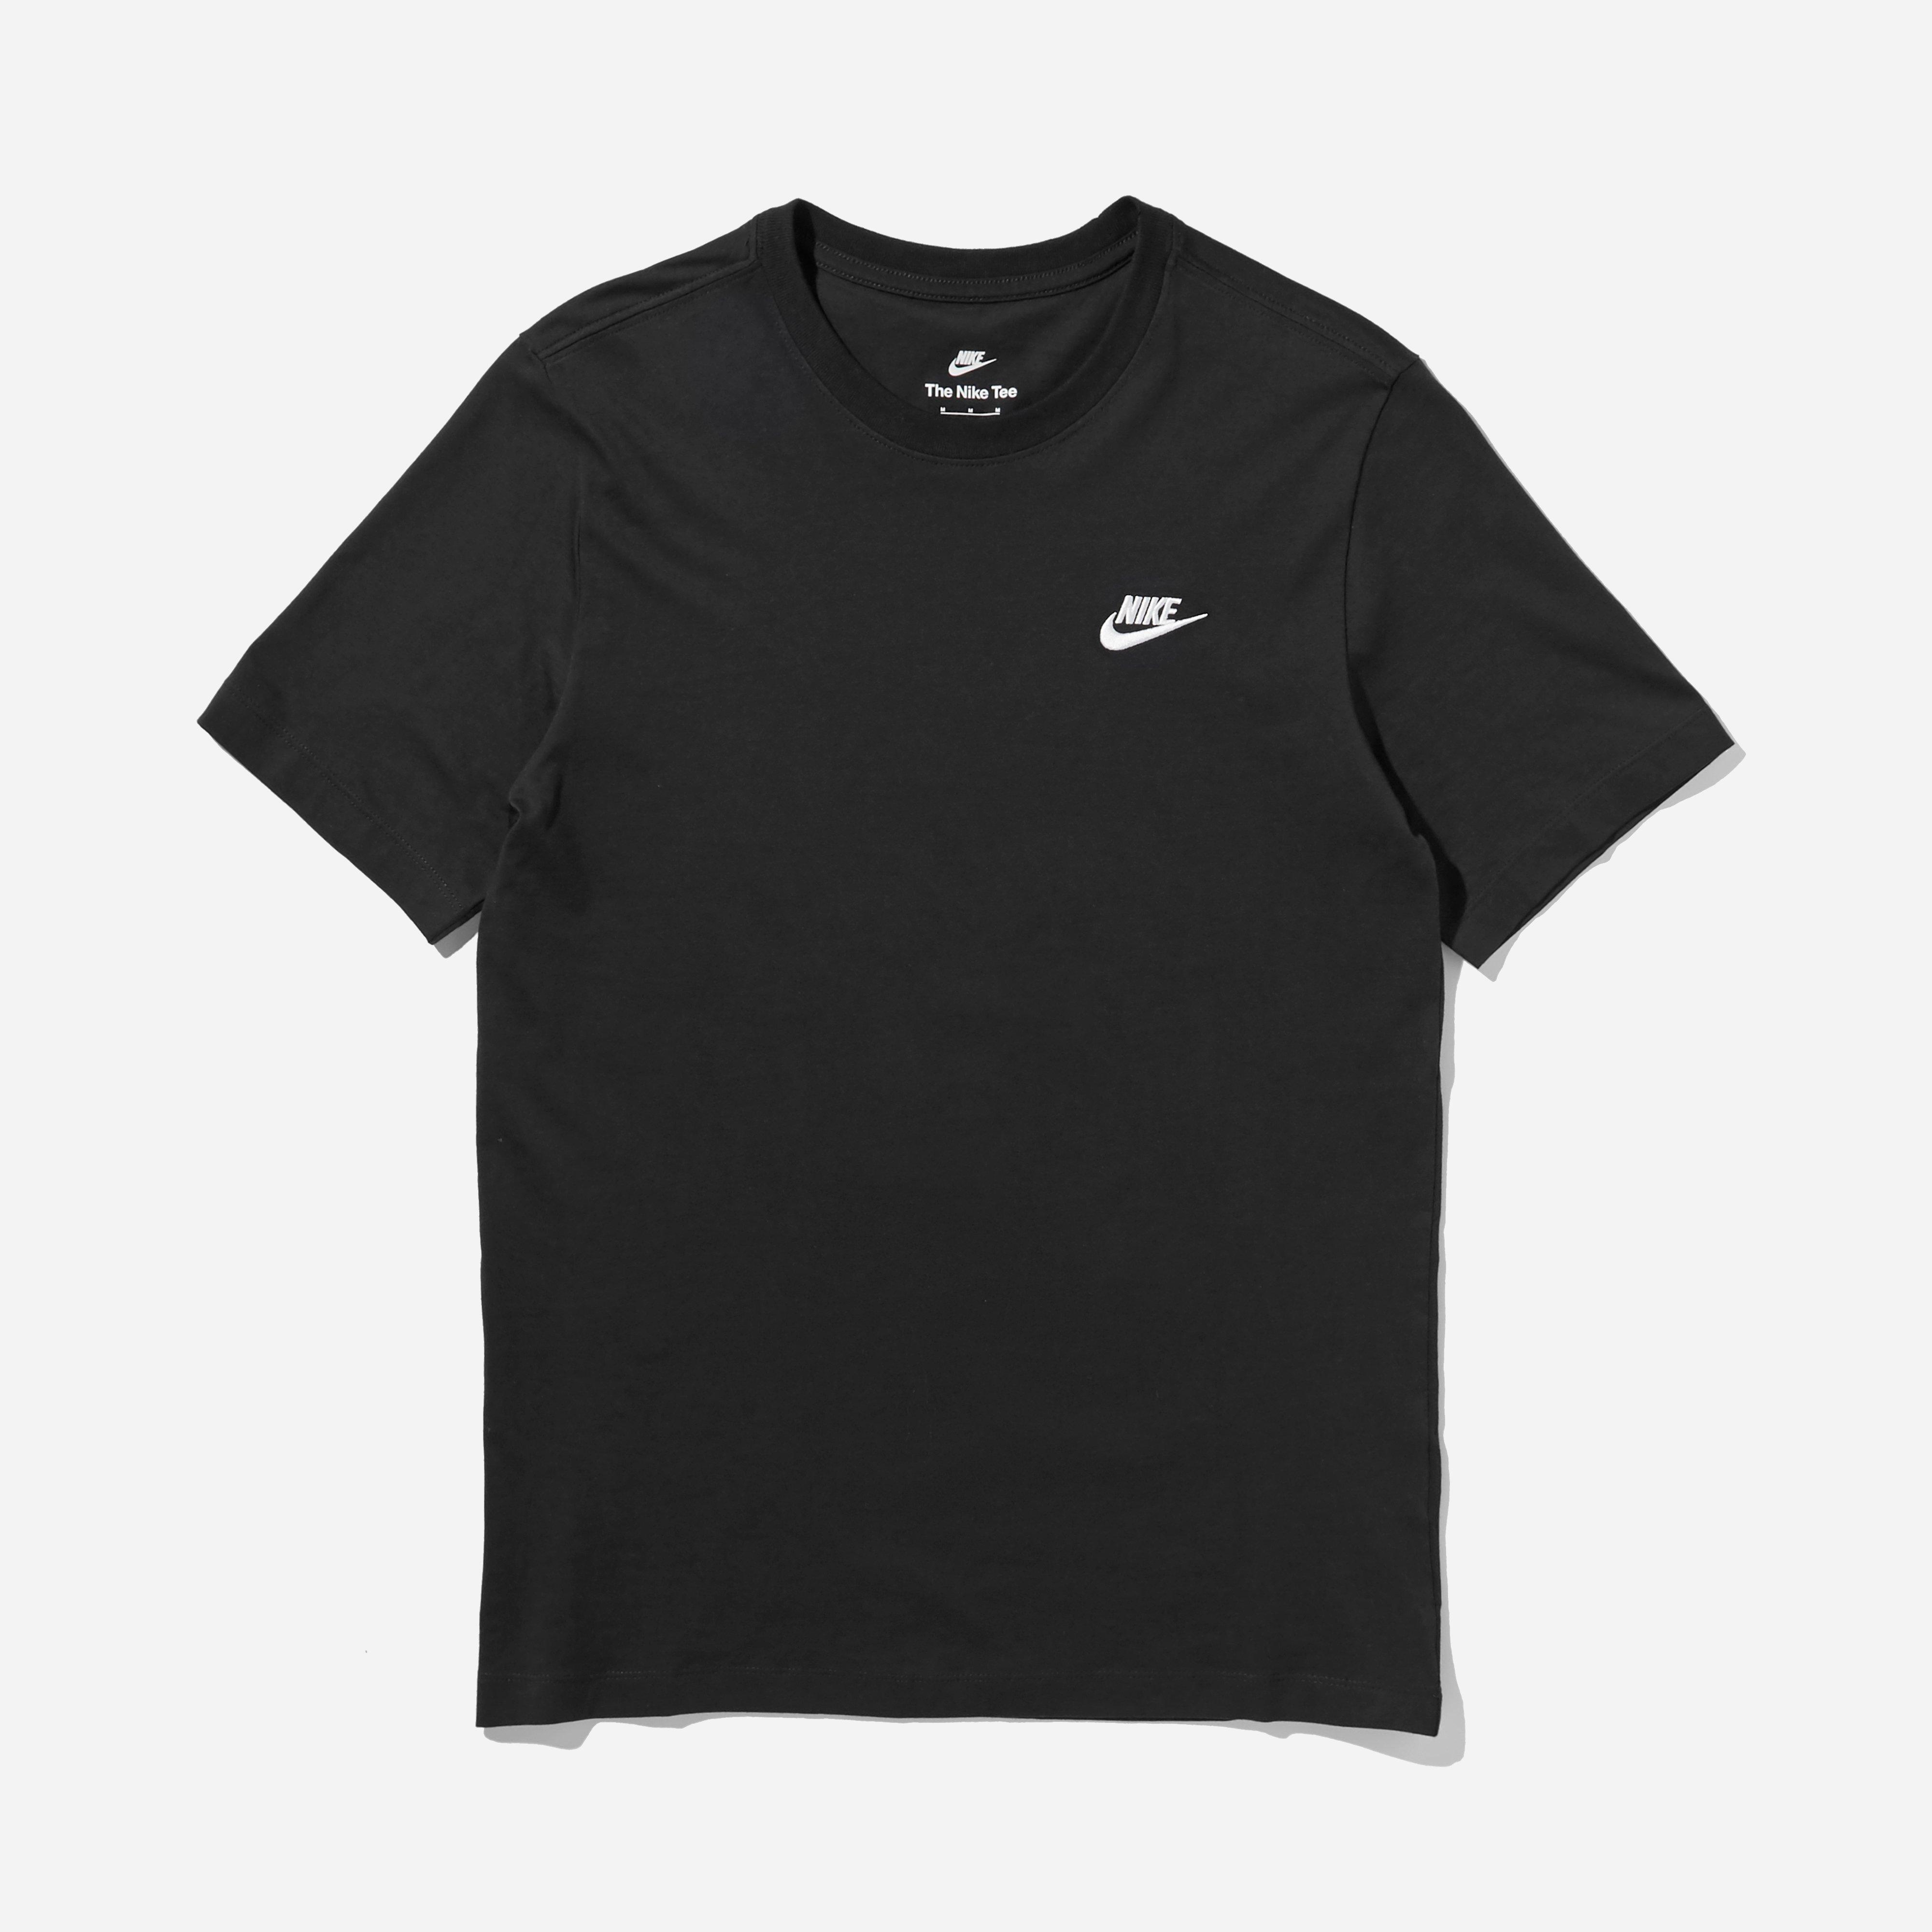 Anonymous Ism Tie Dye Socks